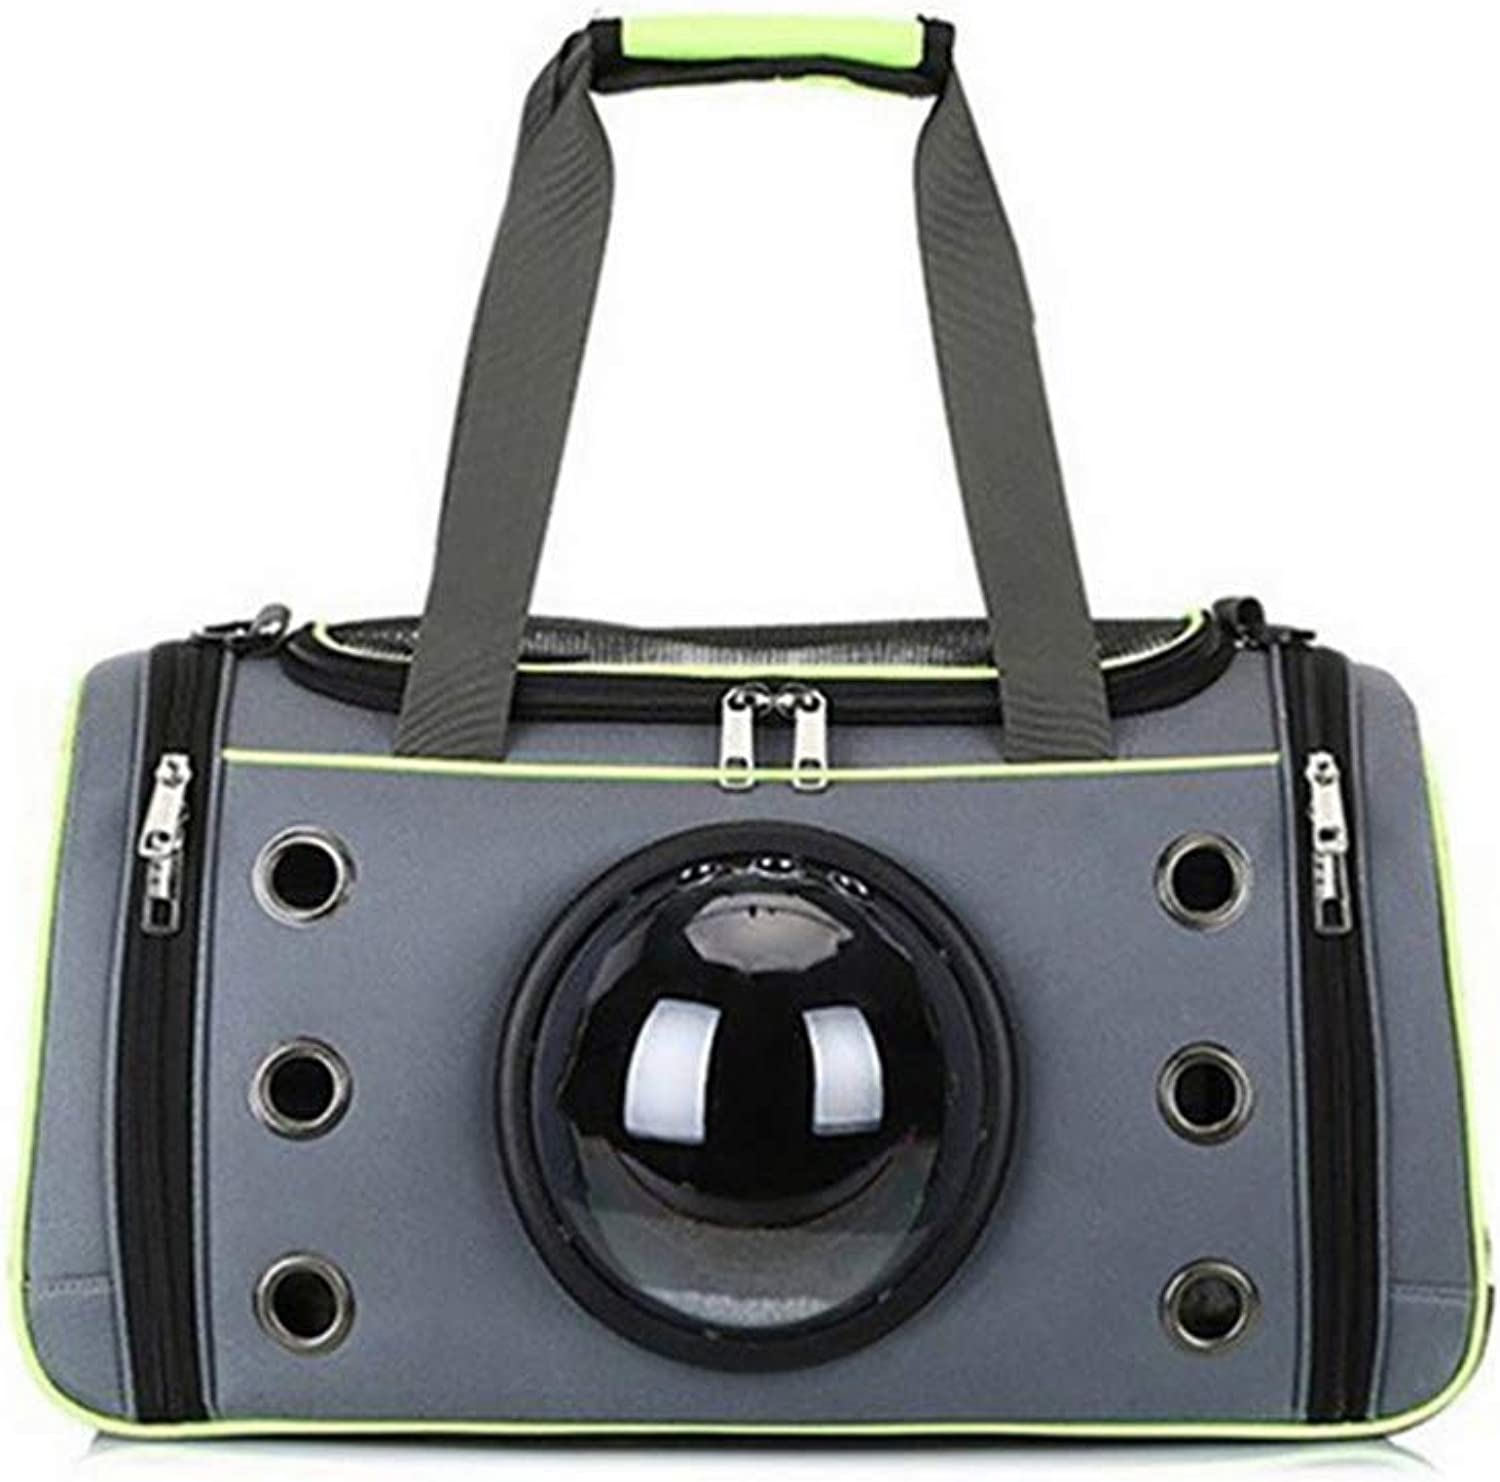 Travel Pet Carrying Case Bag Comfortable Space Capsule Portable Cat Handbag Breathable Out Bag Strap Carrier 01 S